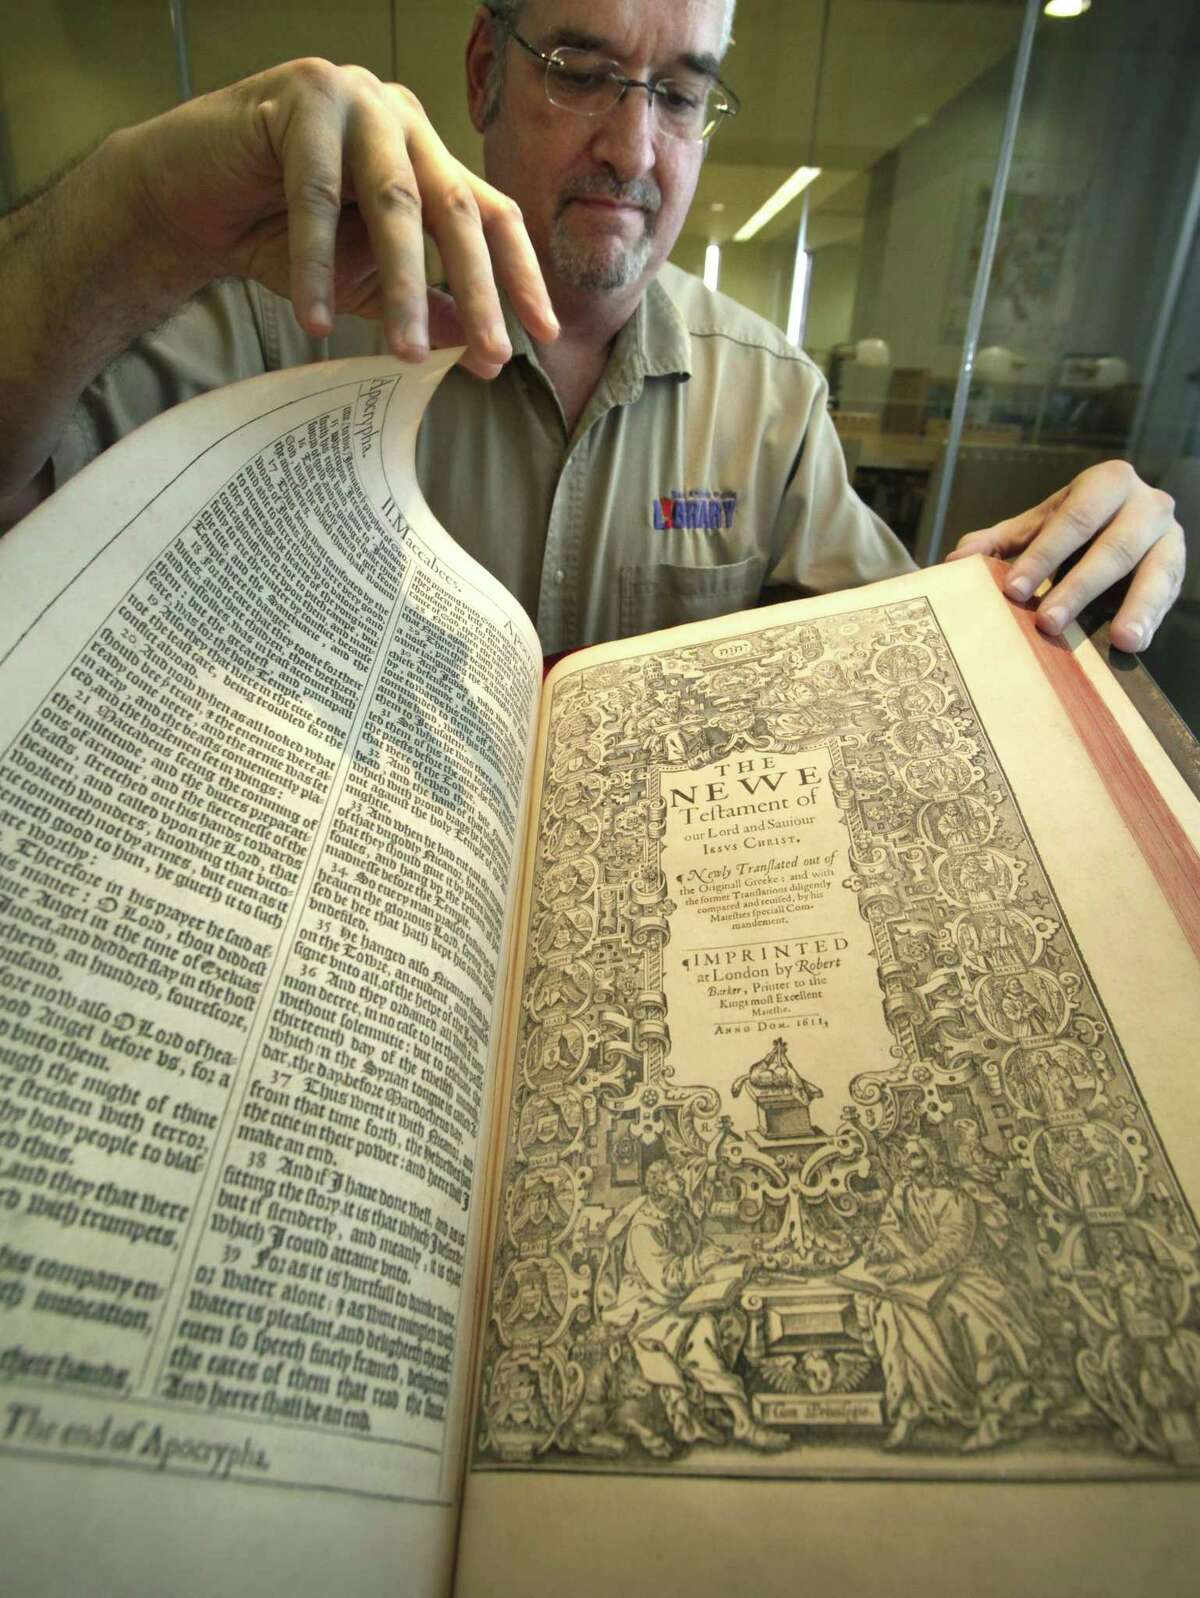 Matt DeWaelsche, assistant manager and archivist at San Antonio's Central Library, turns the page on the first-edition 1611 King James Bible, which was part of the library's collection in 2011, when it turned 400 years old.